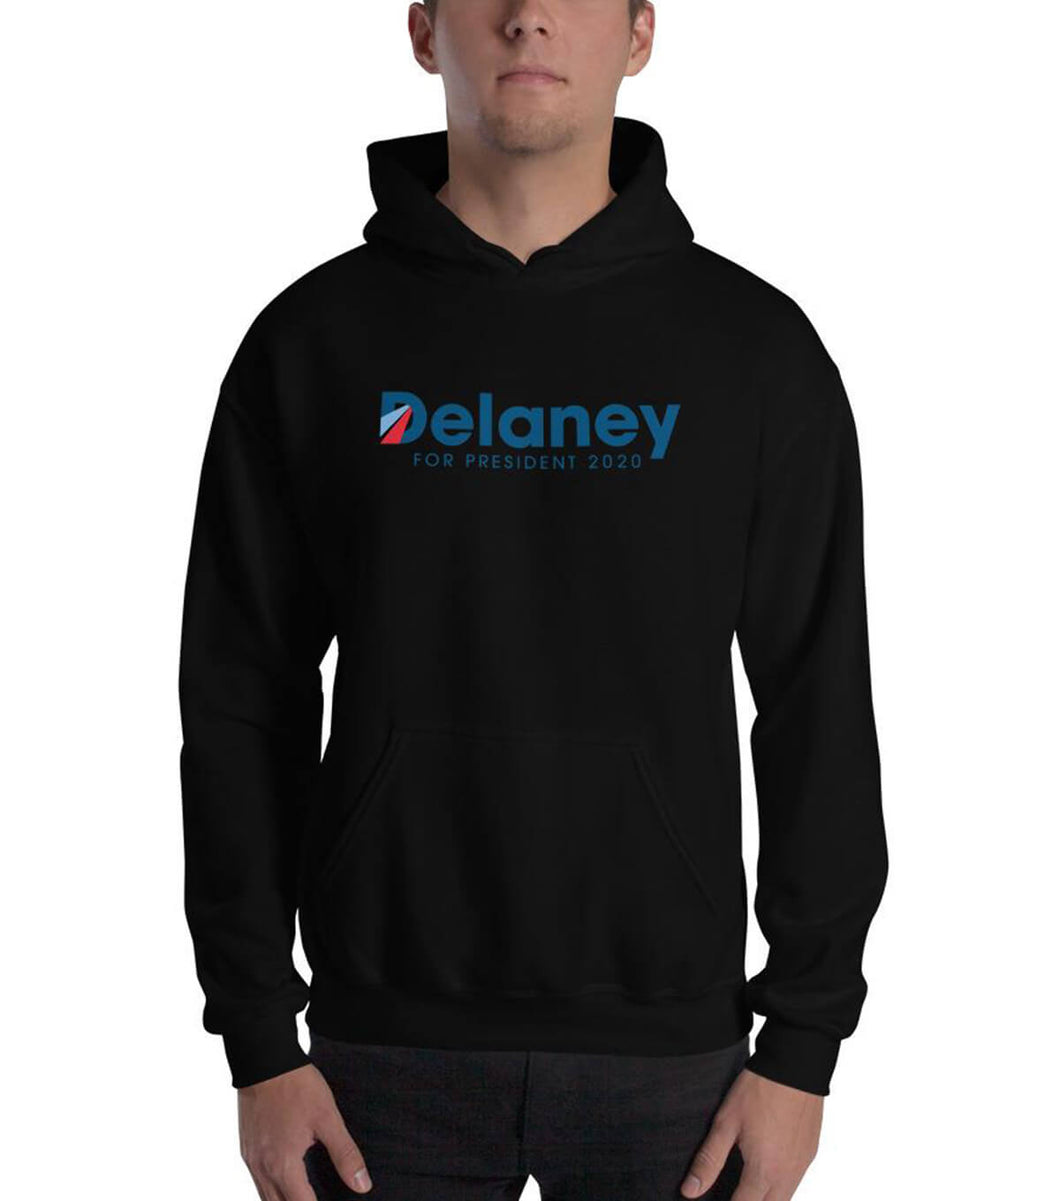 Delaney for President 2020 Hooded Sweatshirt